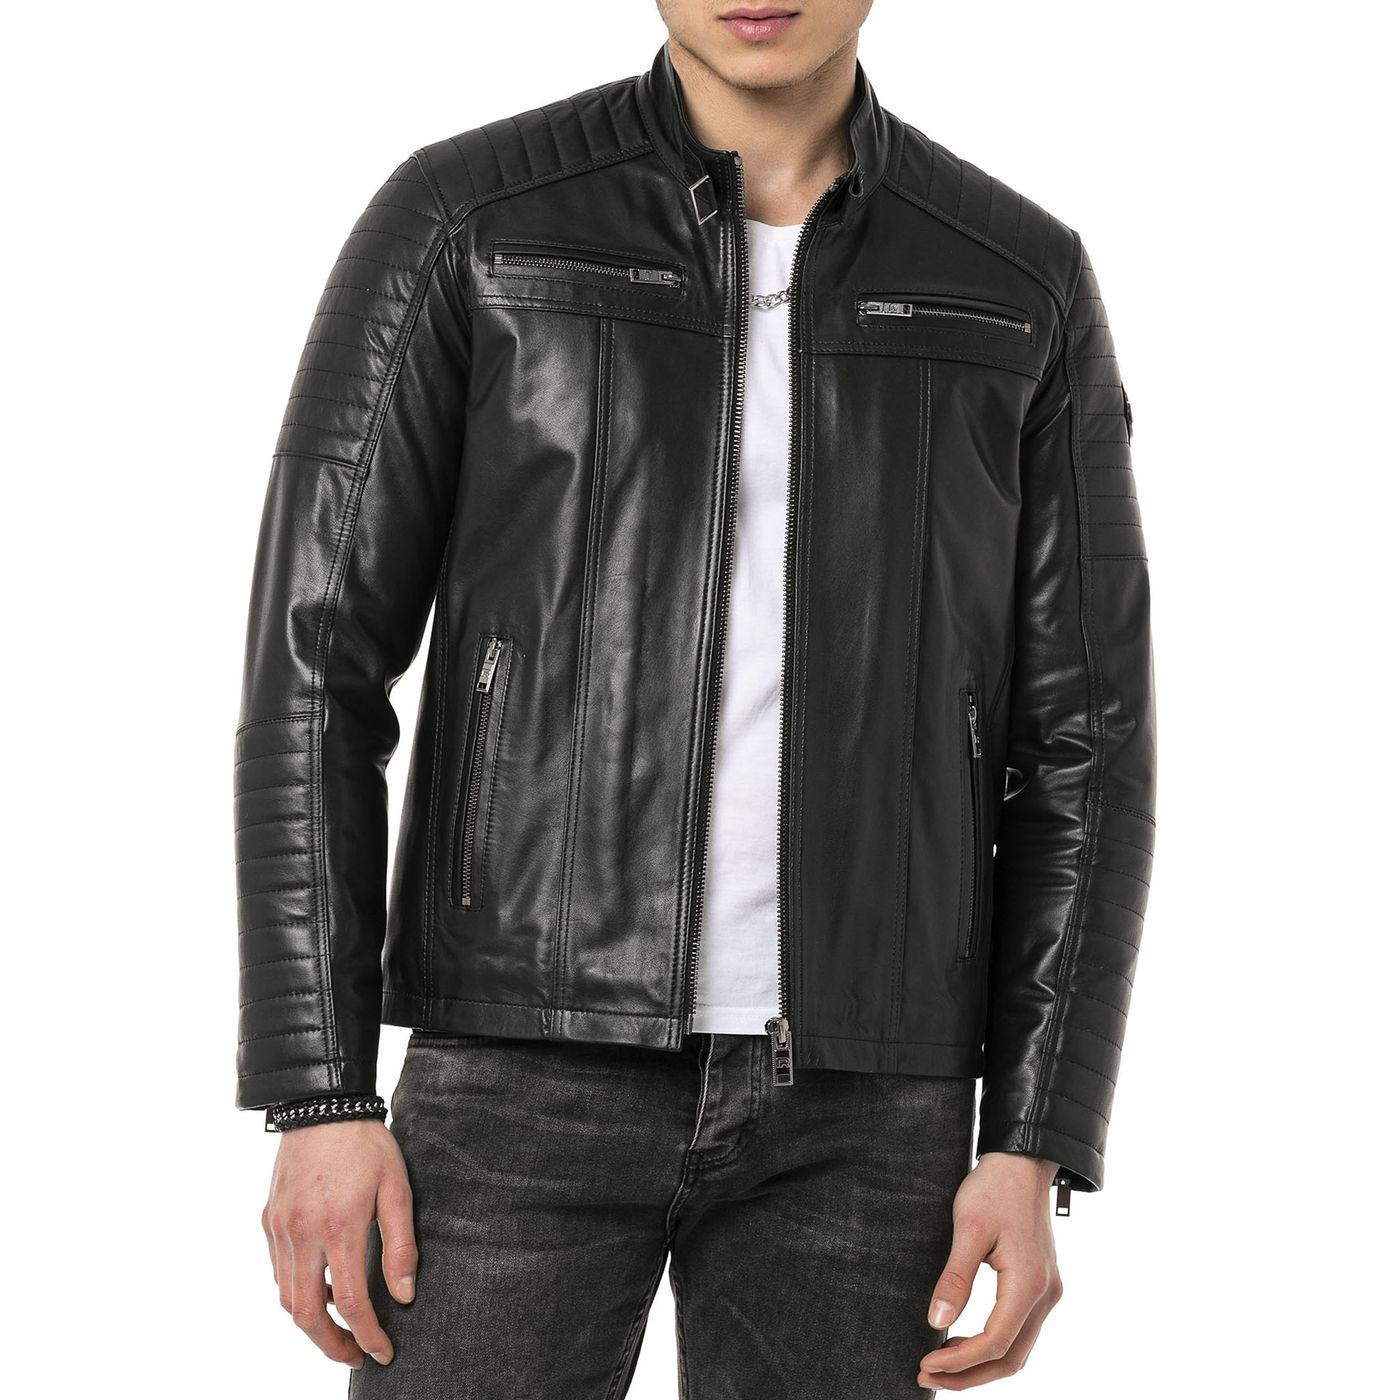 red bridge herren biker jacke kunst lederjacke jacket schwarz m6013 black 199 99. Black Bedroom Furniture Sets. Home Design Ideas